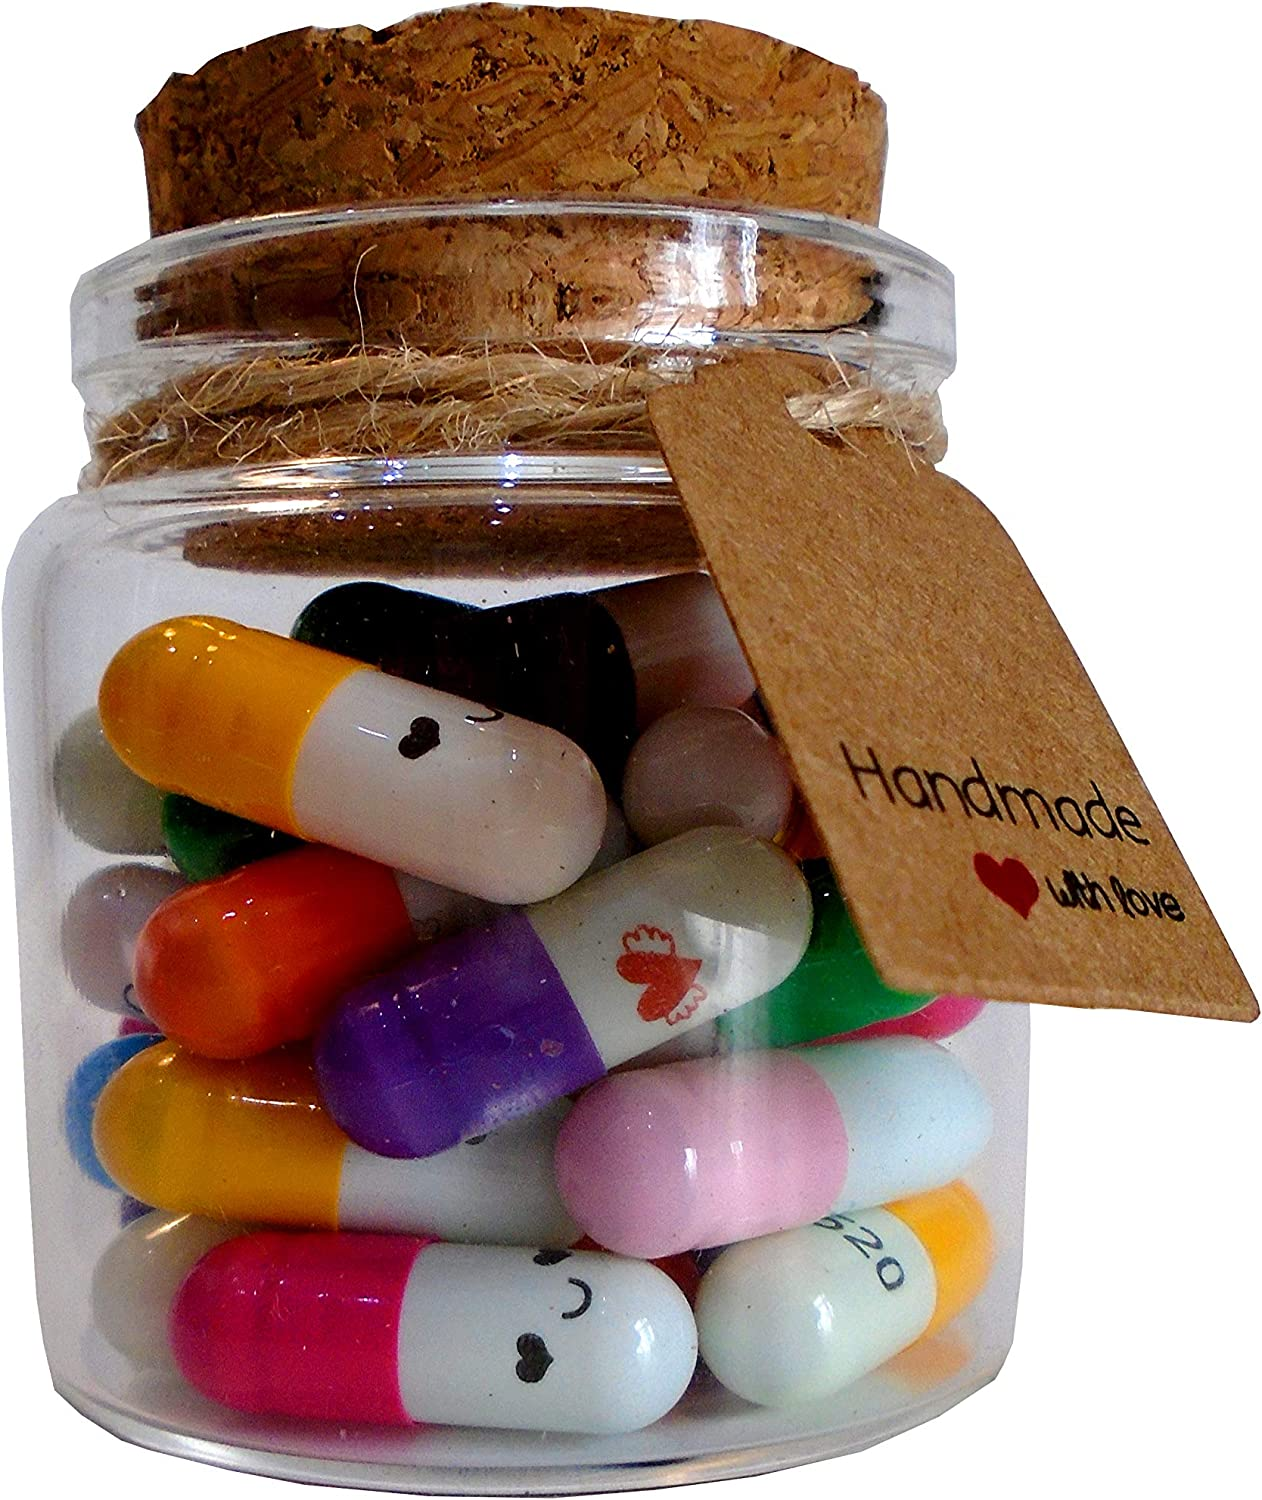 Little Jar Of Big Ideas Tiny Smiley Cute Capsule Messages In A Jar Thoughtful Gift Unique Present Thirty Two Capsules And Notes Artisan Handcrafted Gift Amazon Co Uk Kitchen Home